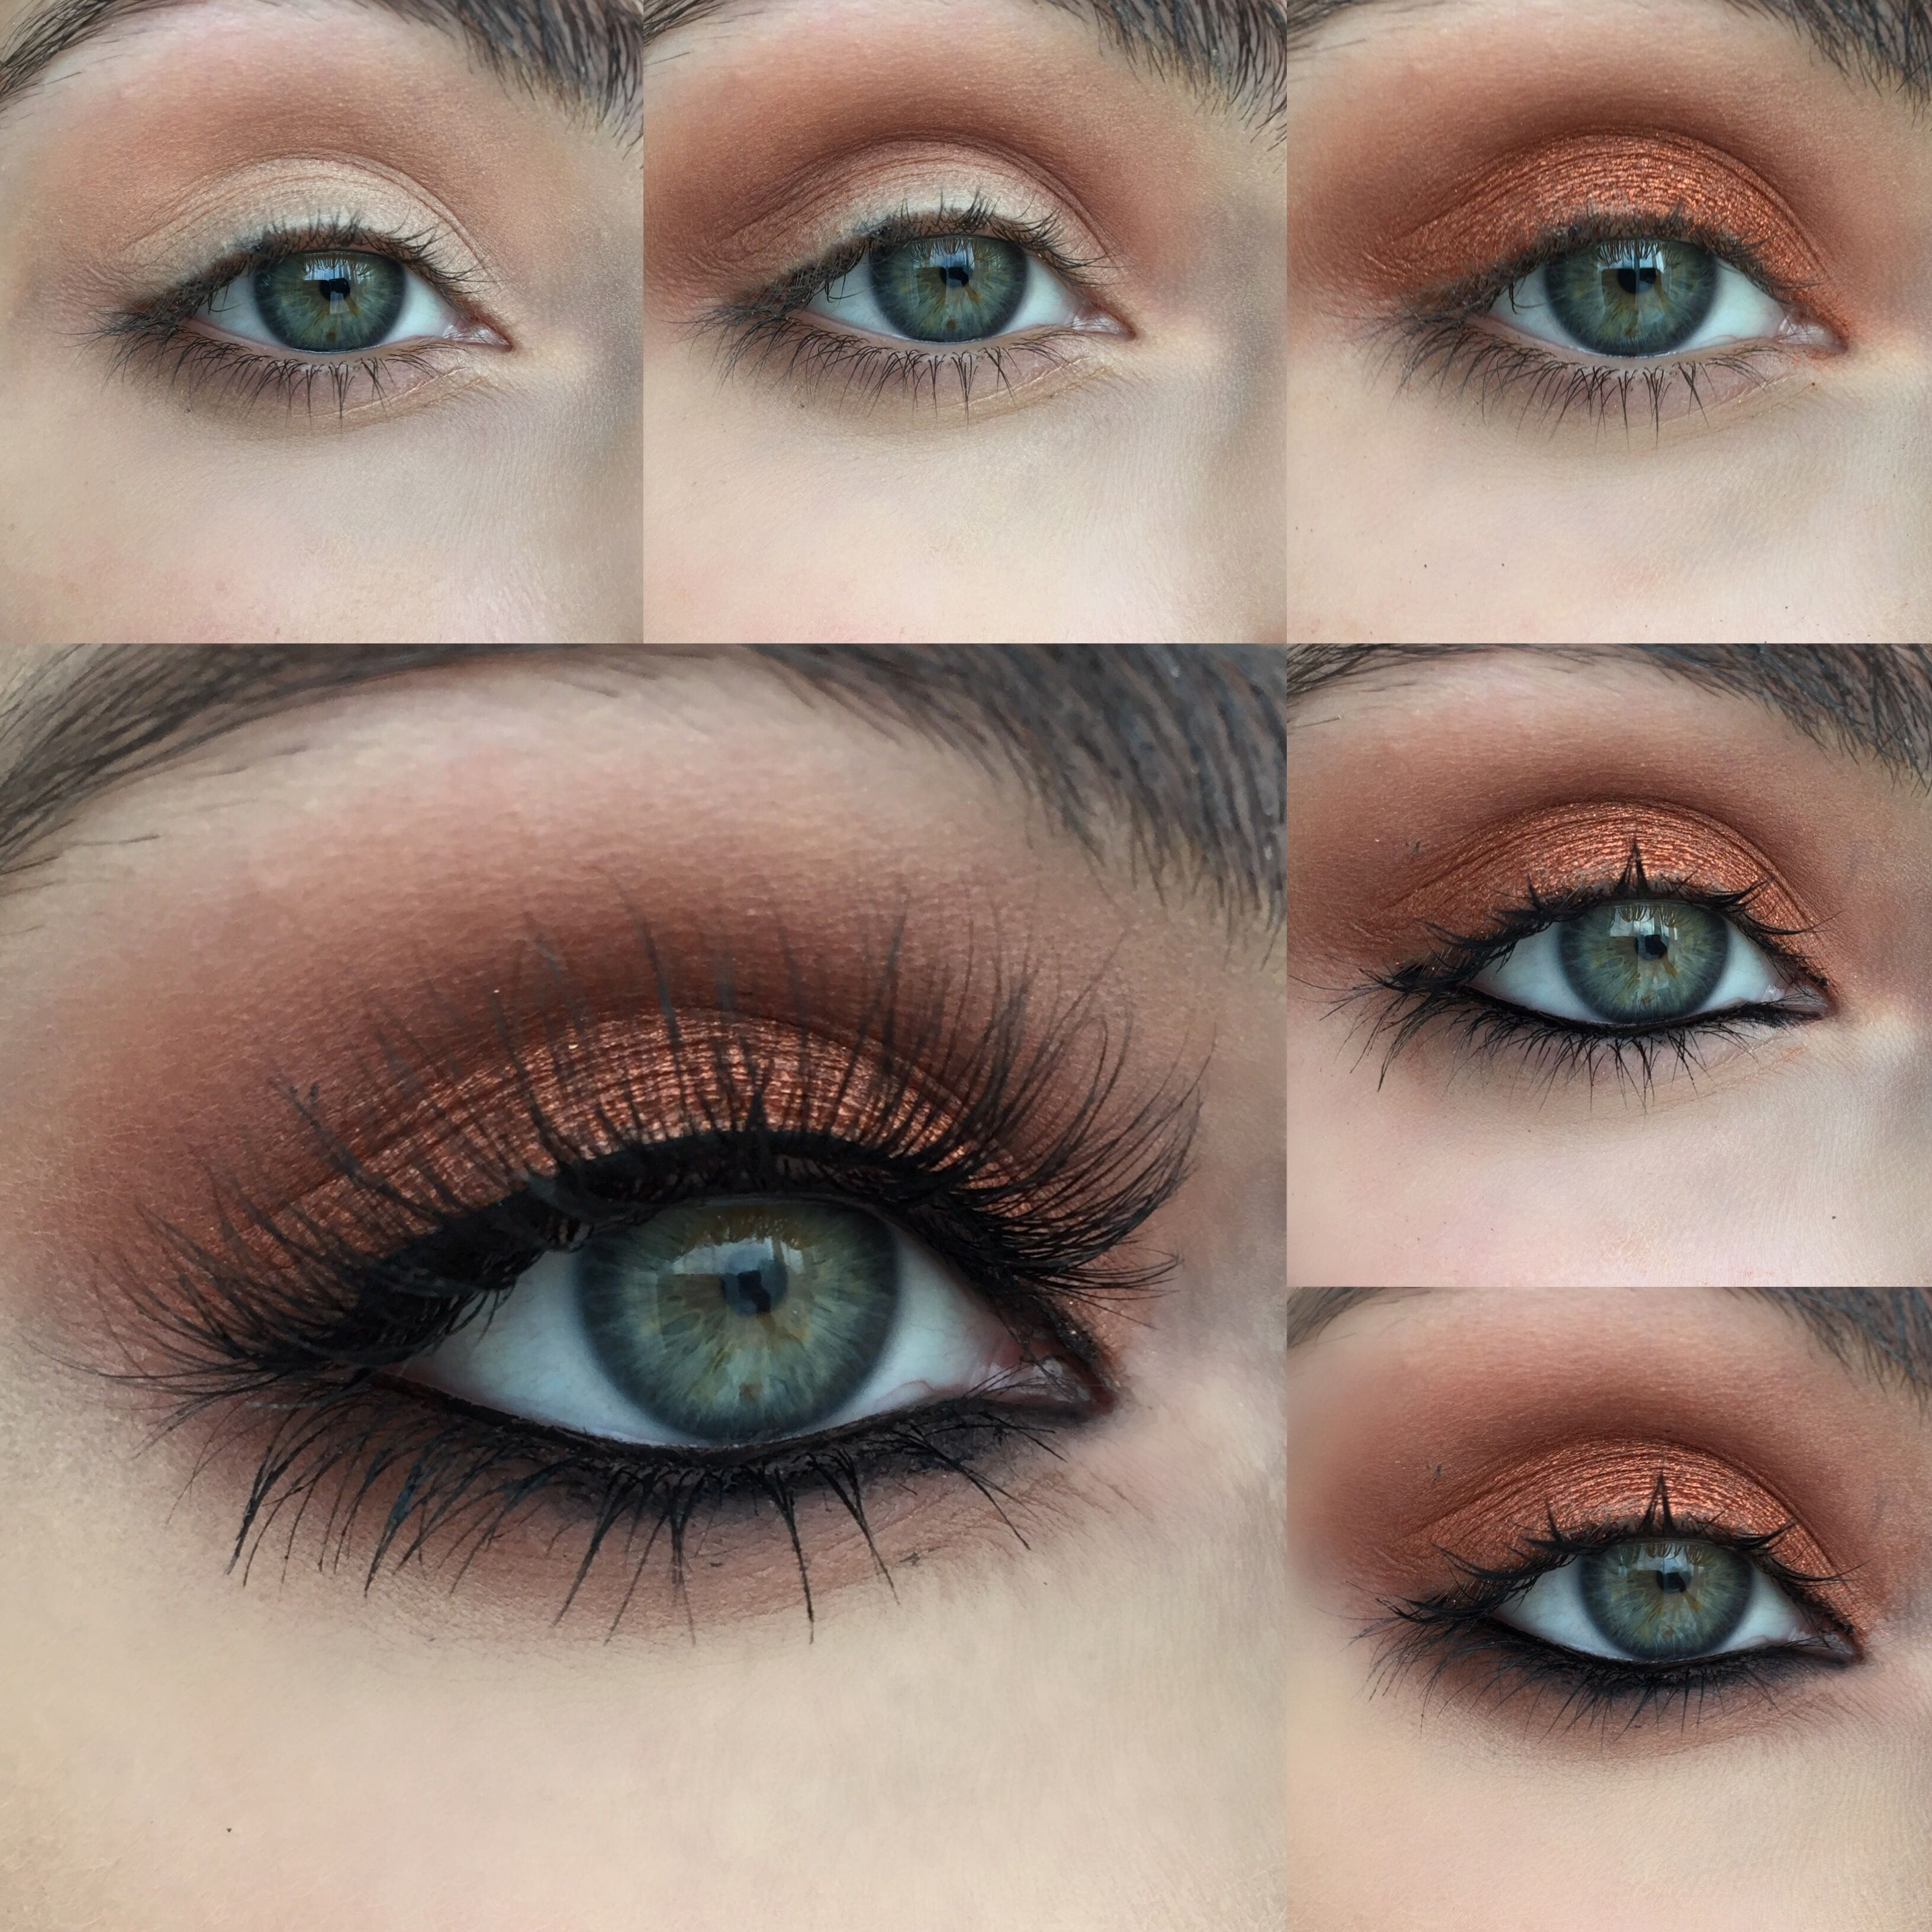 Warm Copper Photo Tutorial | Metallic & Glittery Makeup Looks with regard to What Color Eyeshadow For Green Eyes